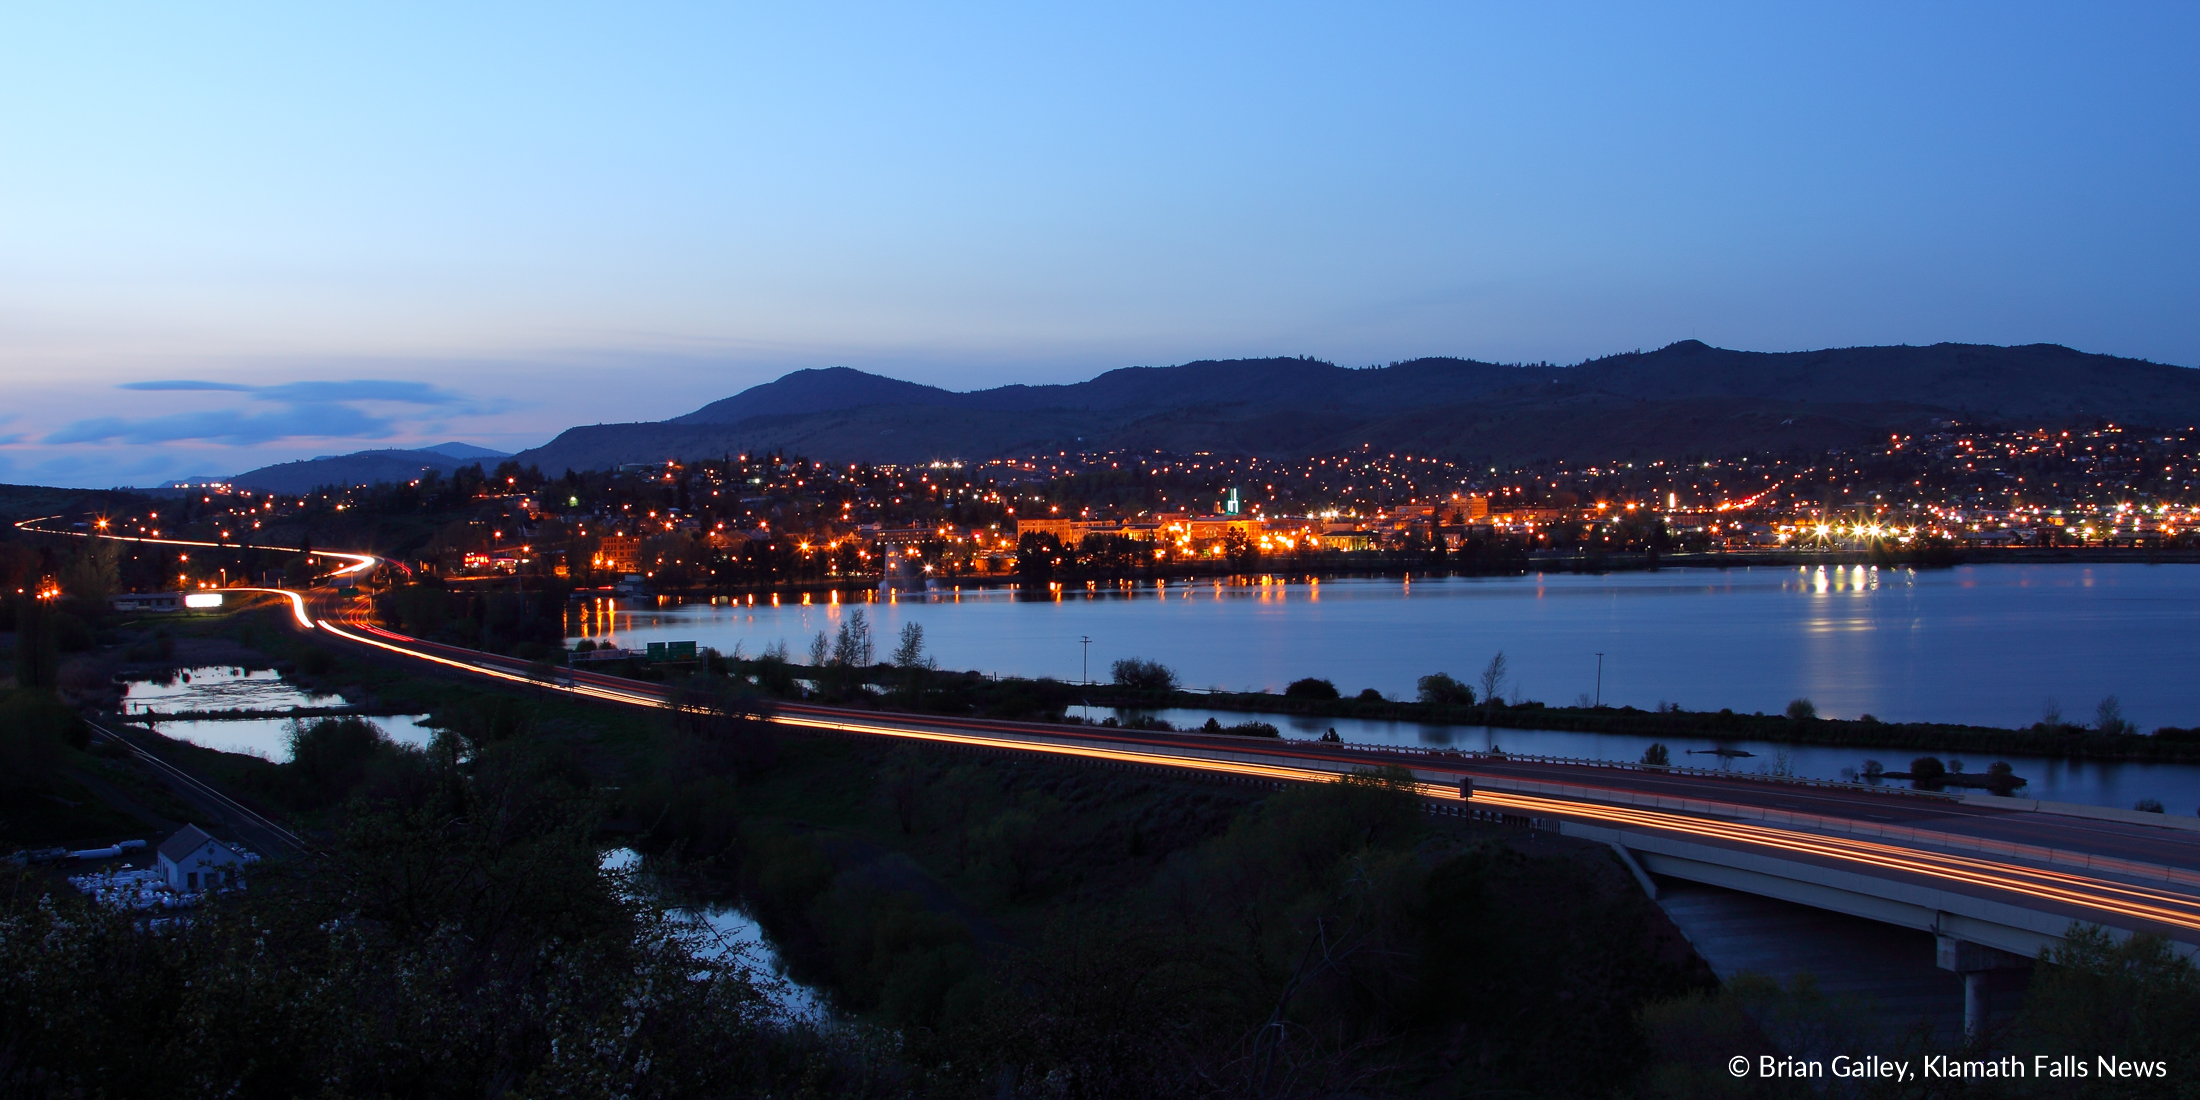 File Photo - Downtown Klamath Falls as seen from Riverside Drive. (Image by, Brian Gailey)